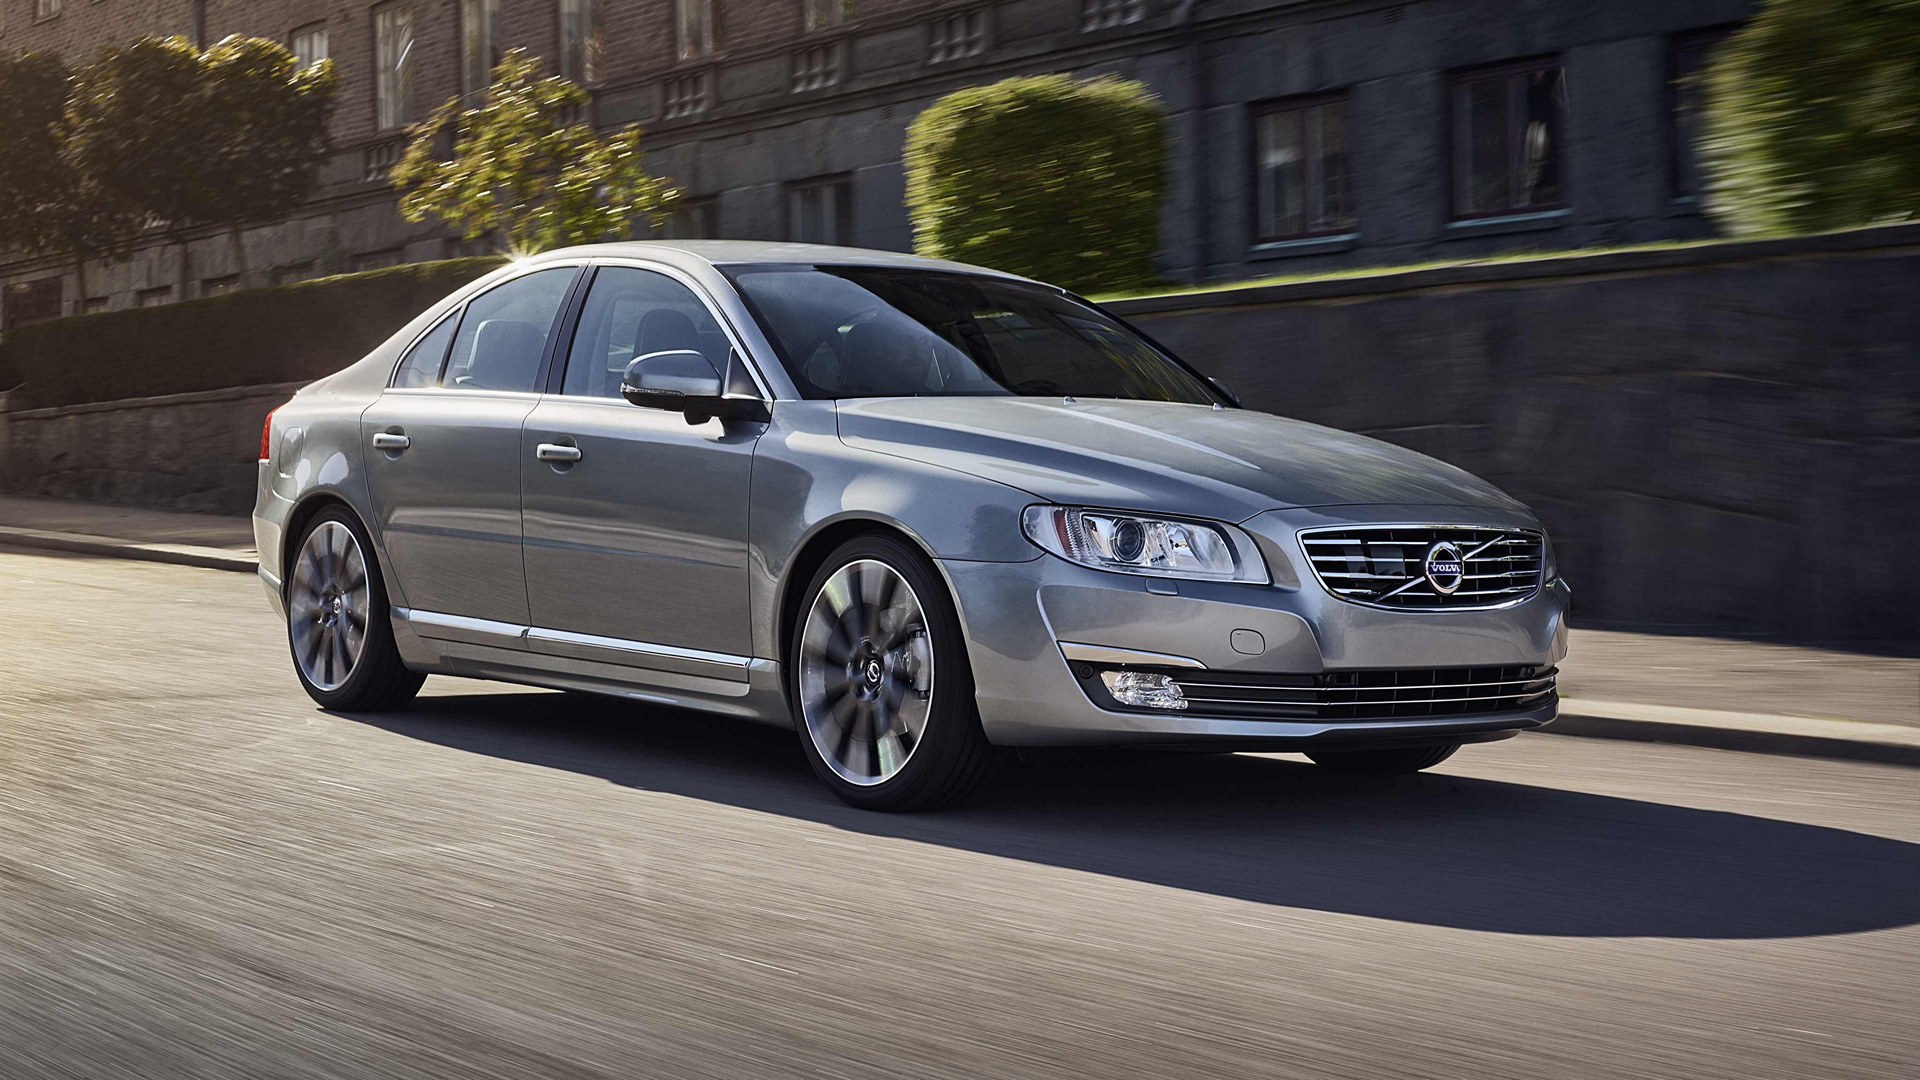 2016 Volvo S80 © Zhejiang Geely Holding Group Co., Ltd